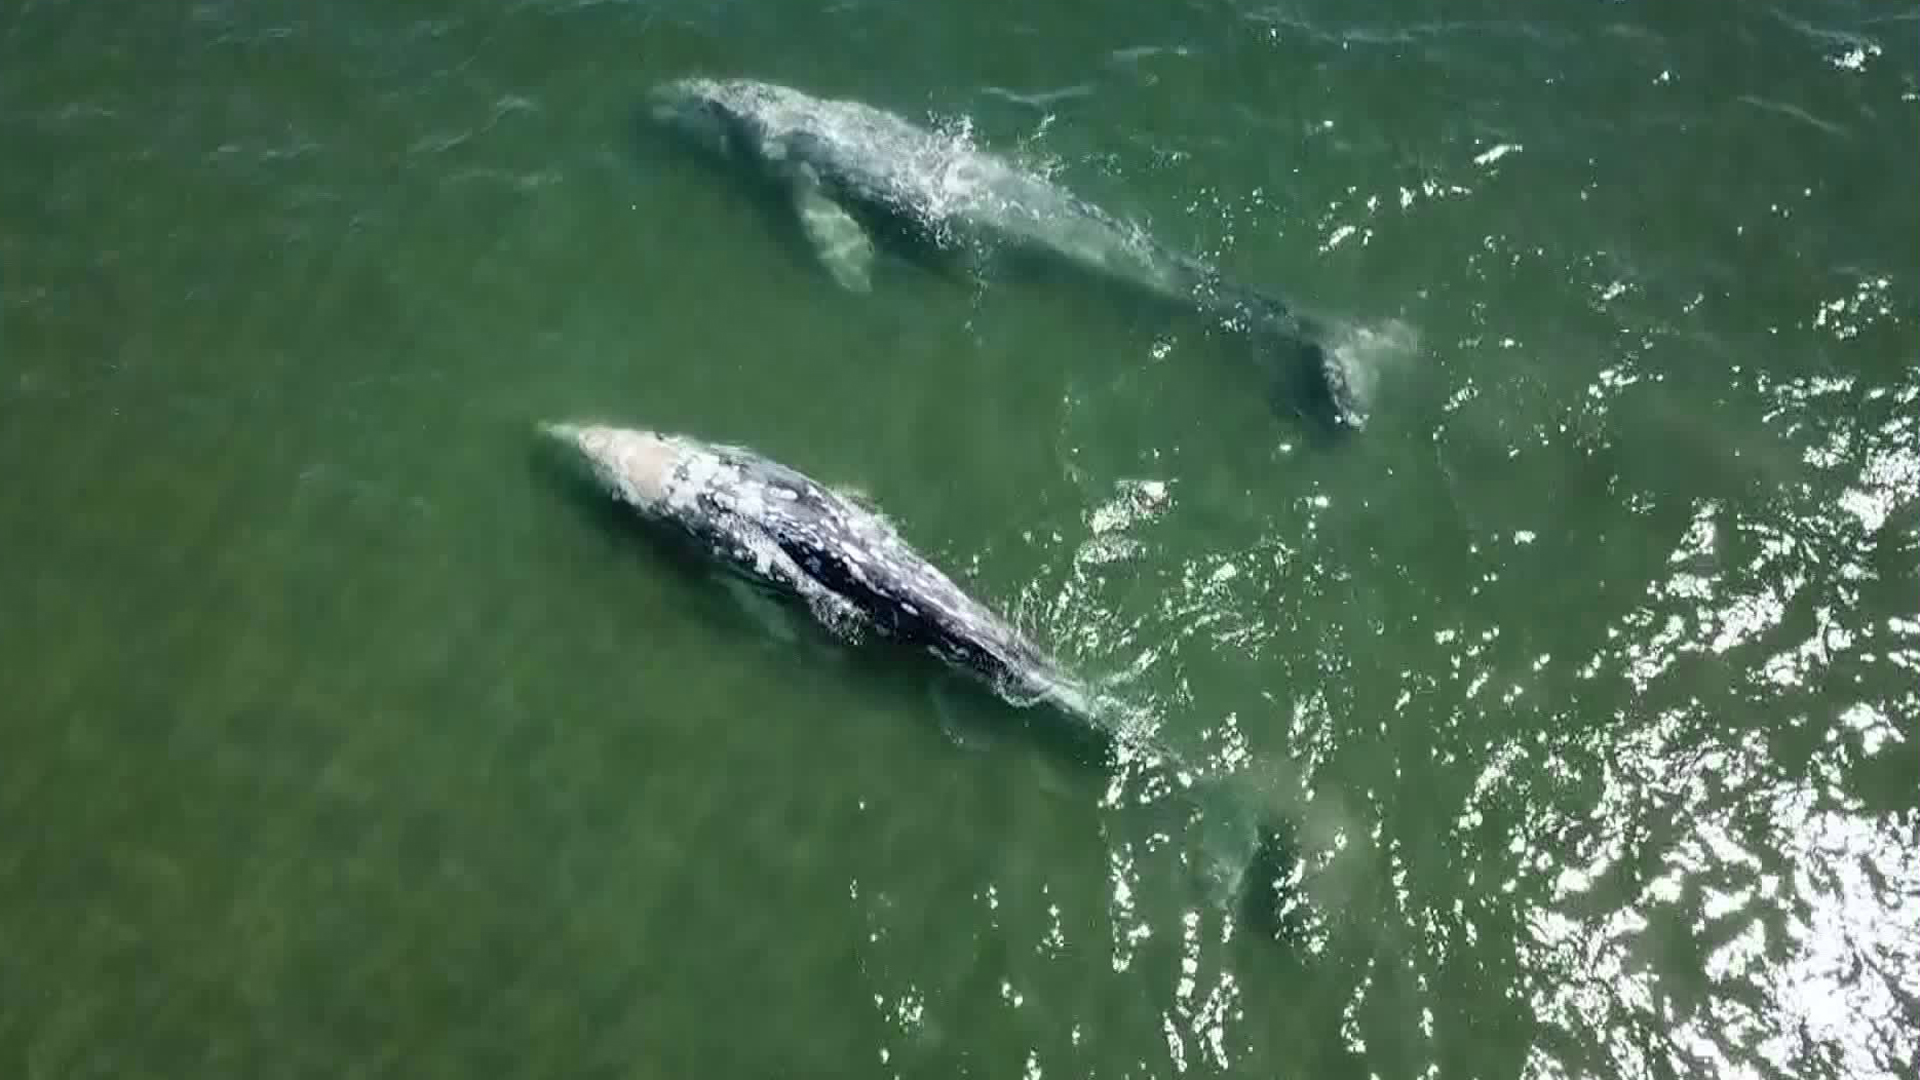 A pair of whales were swimming in the San Gabriel River near the Marina Drive Bridge, off the coast of Seal Beach on March 26, 2018. (Credit: KTLA)